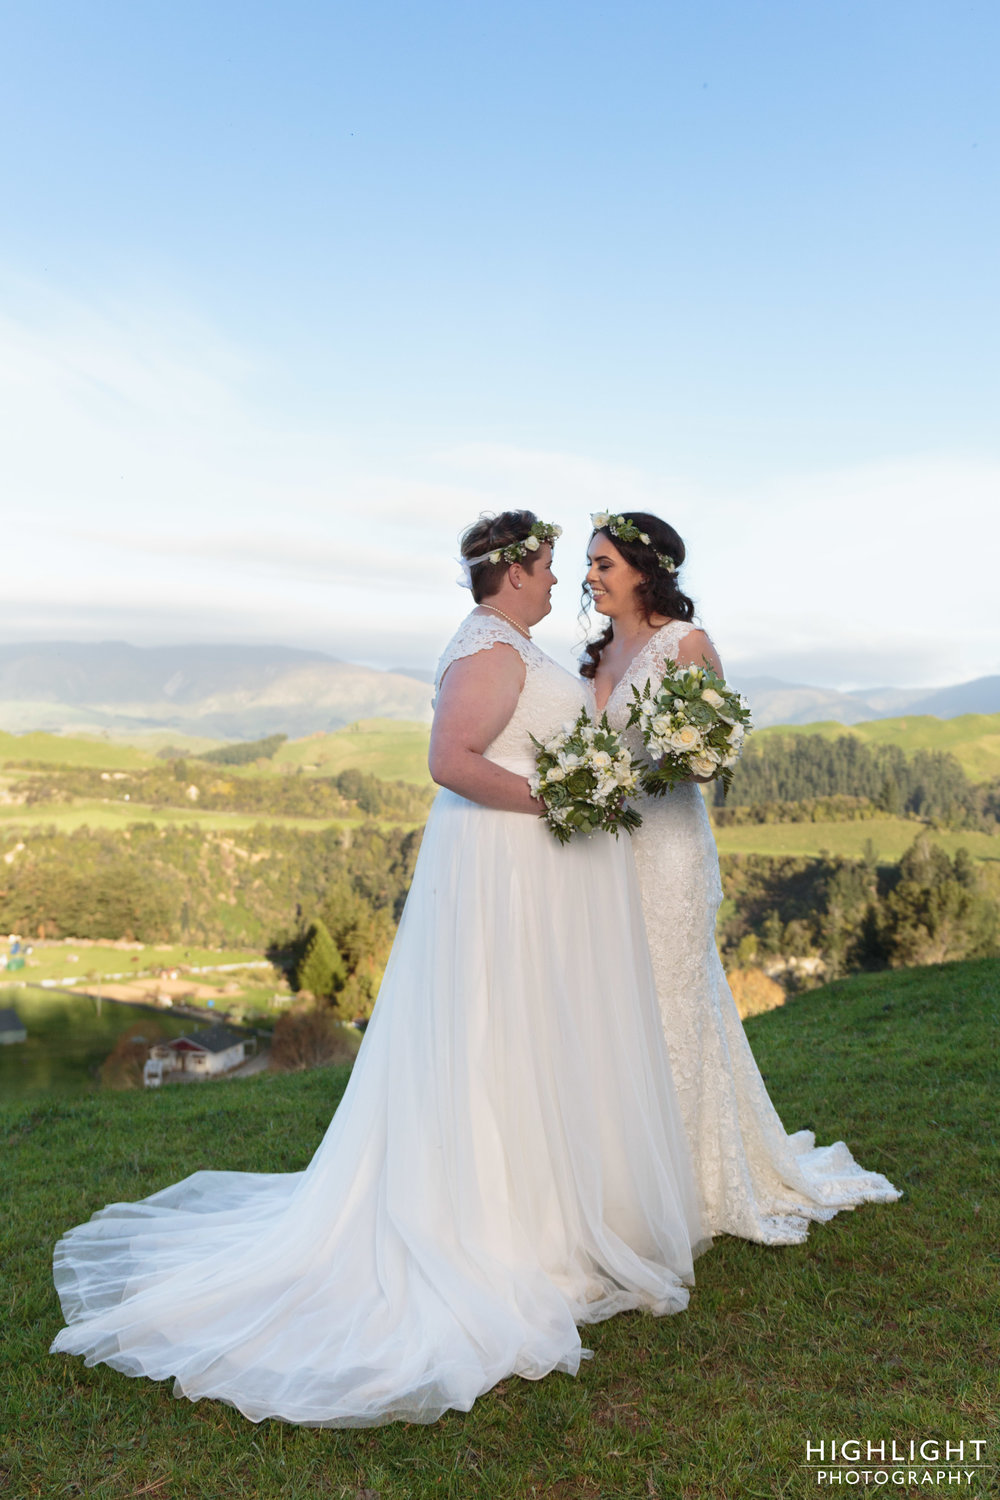 highlight_wedding_photography_makoura_lodge_manawatu_new_zealand-132.jpg